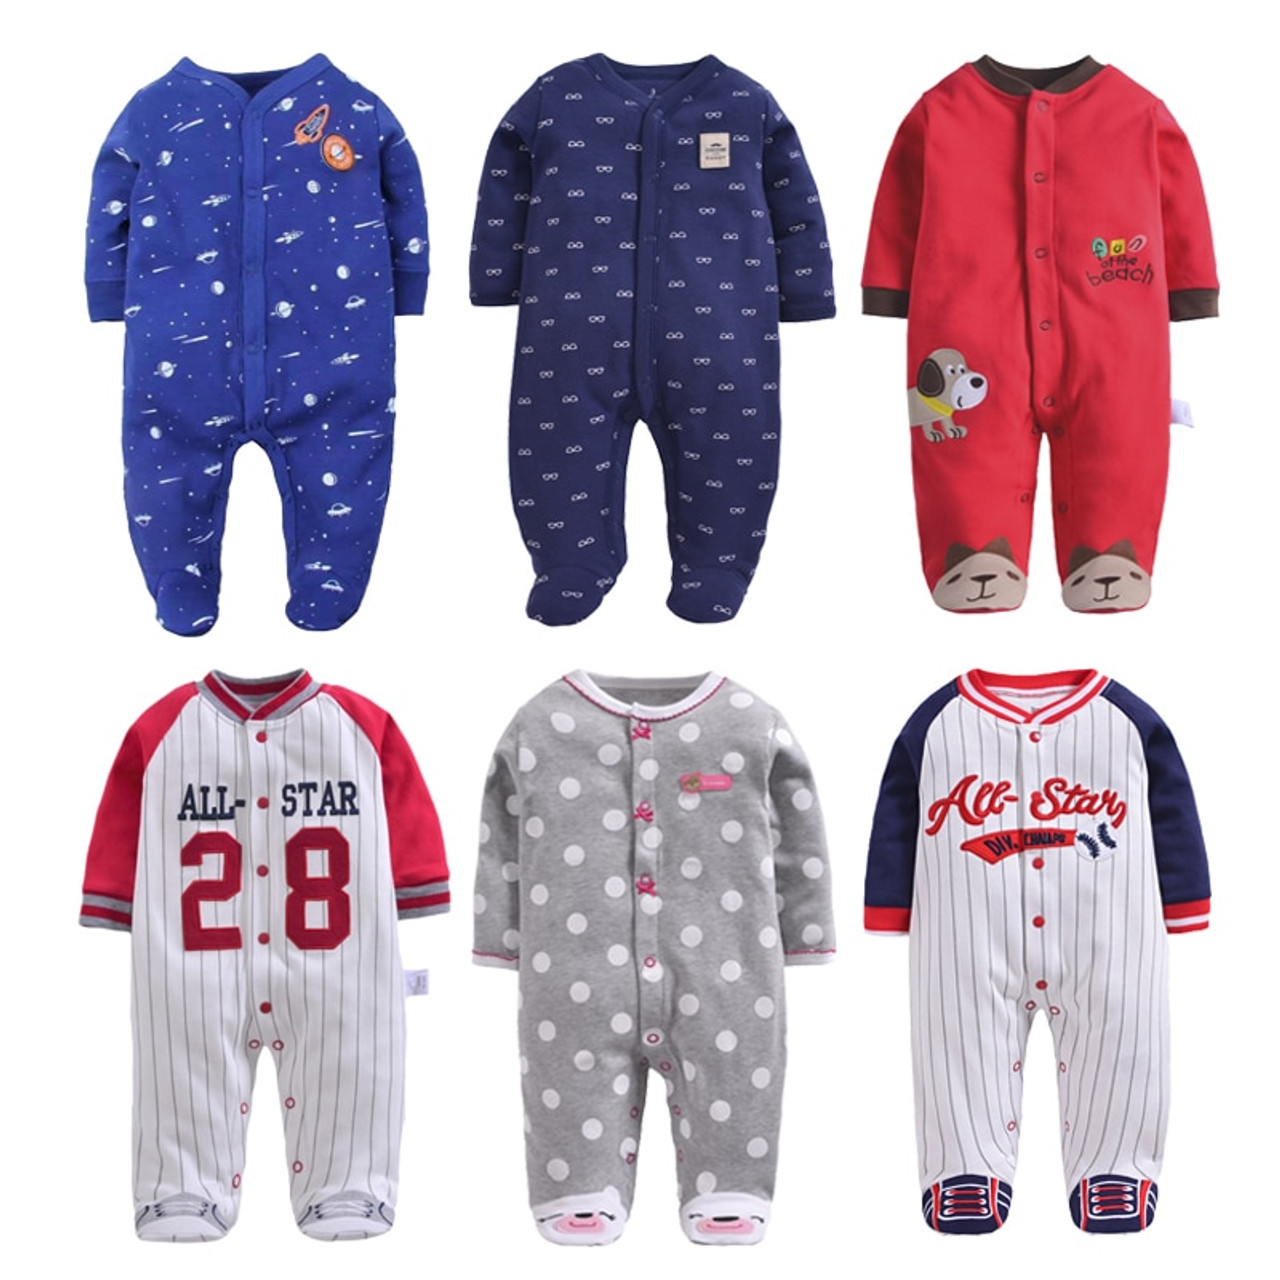 be0048761 New Born Baby Clothing 3-12M Kids Footed Pajamas Baby Boys Girls ...